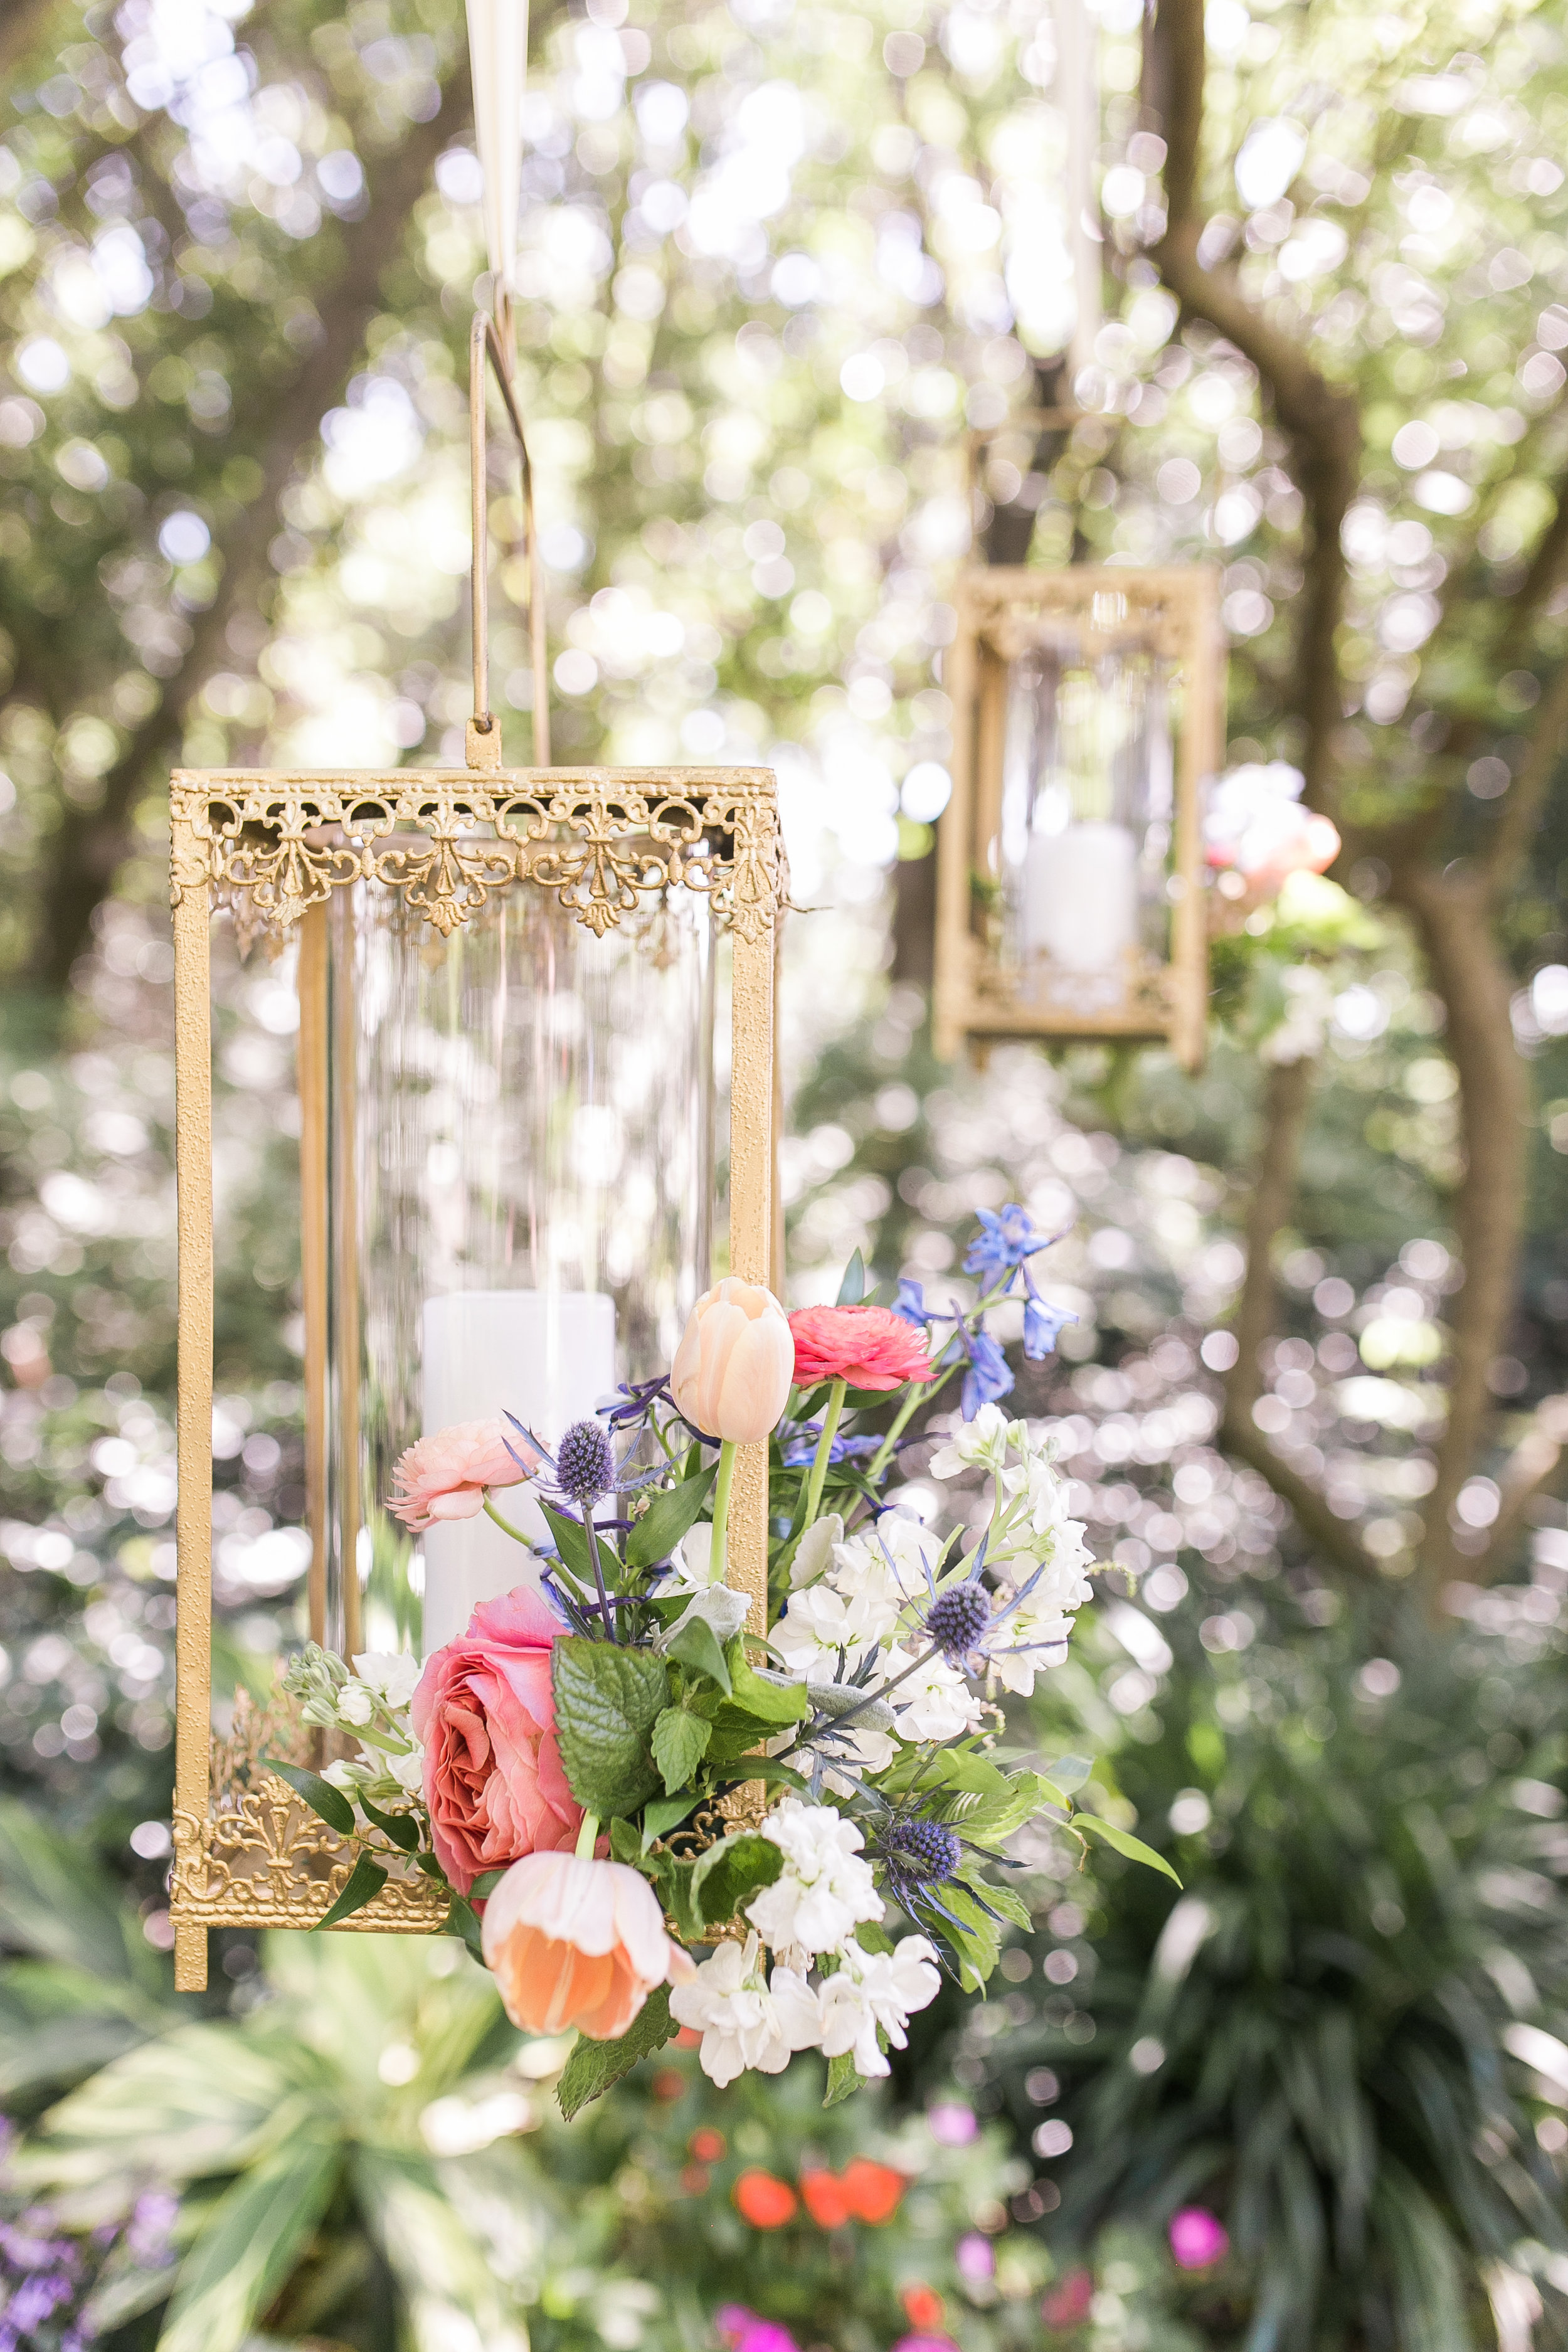 Gold lanterns with floral accents by Branch Design Studio  Colorful outdoor reception at The Thomas Bennett House wedding in Charleston, SC  //  photographed by Jenna Weddings  Traditional wedding ceremony at Cathedral of St. John the Baptist in Charleston, SC  //  A Lowcountry Wedding Magazine & Blog